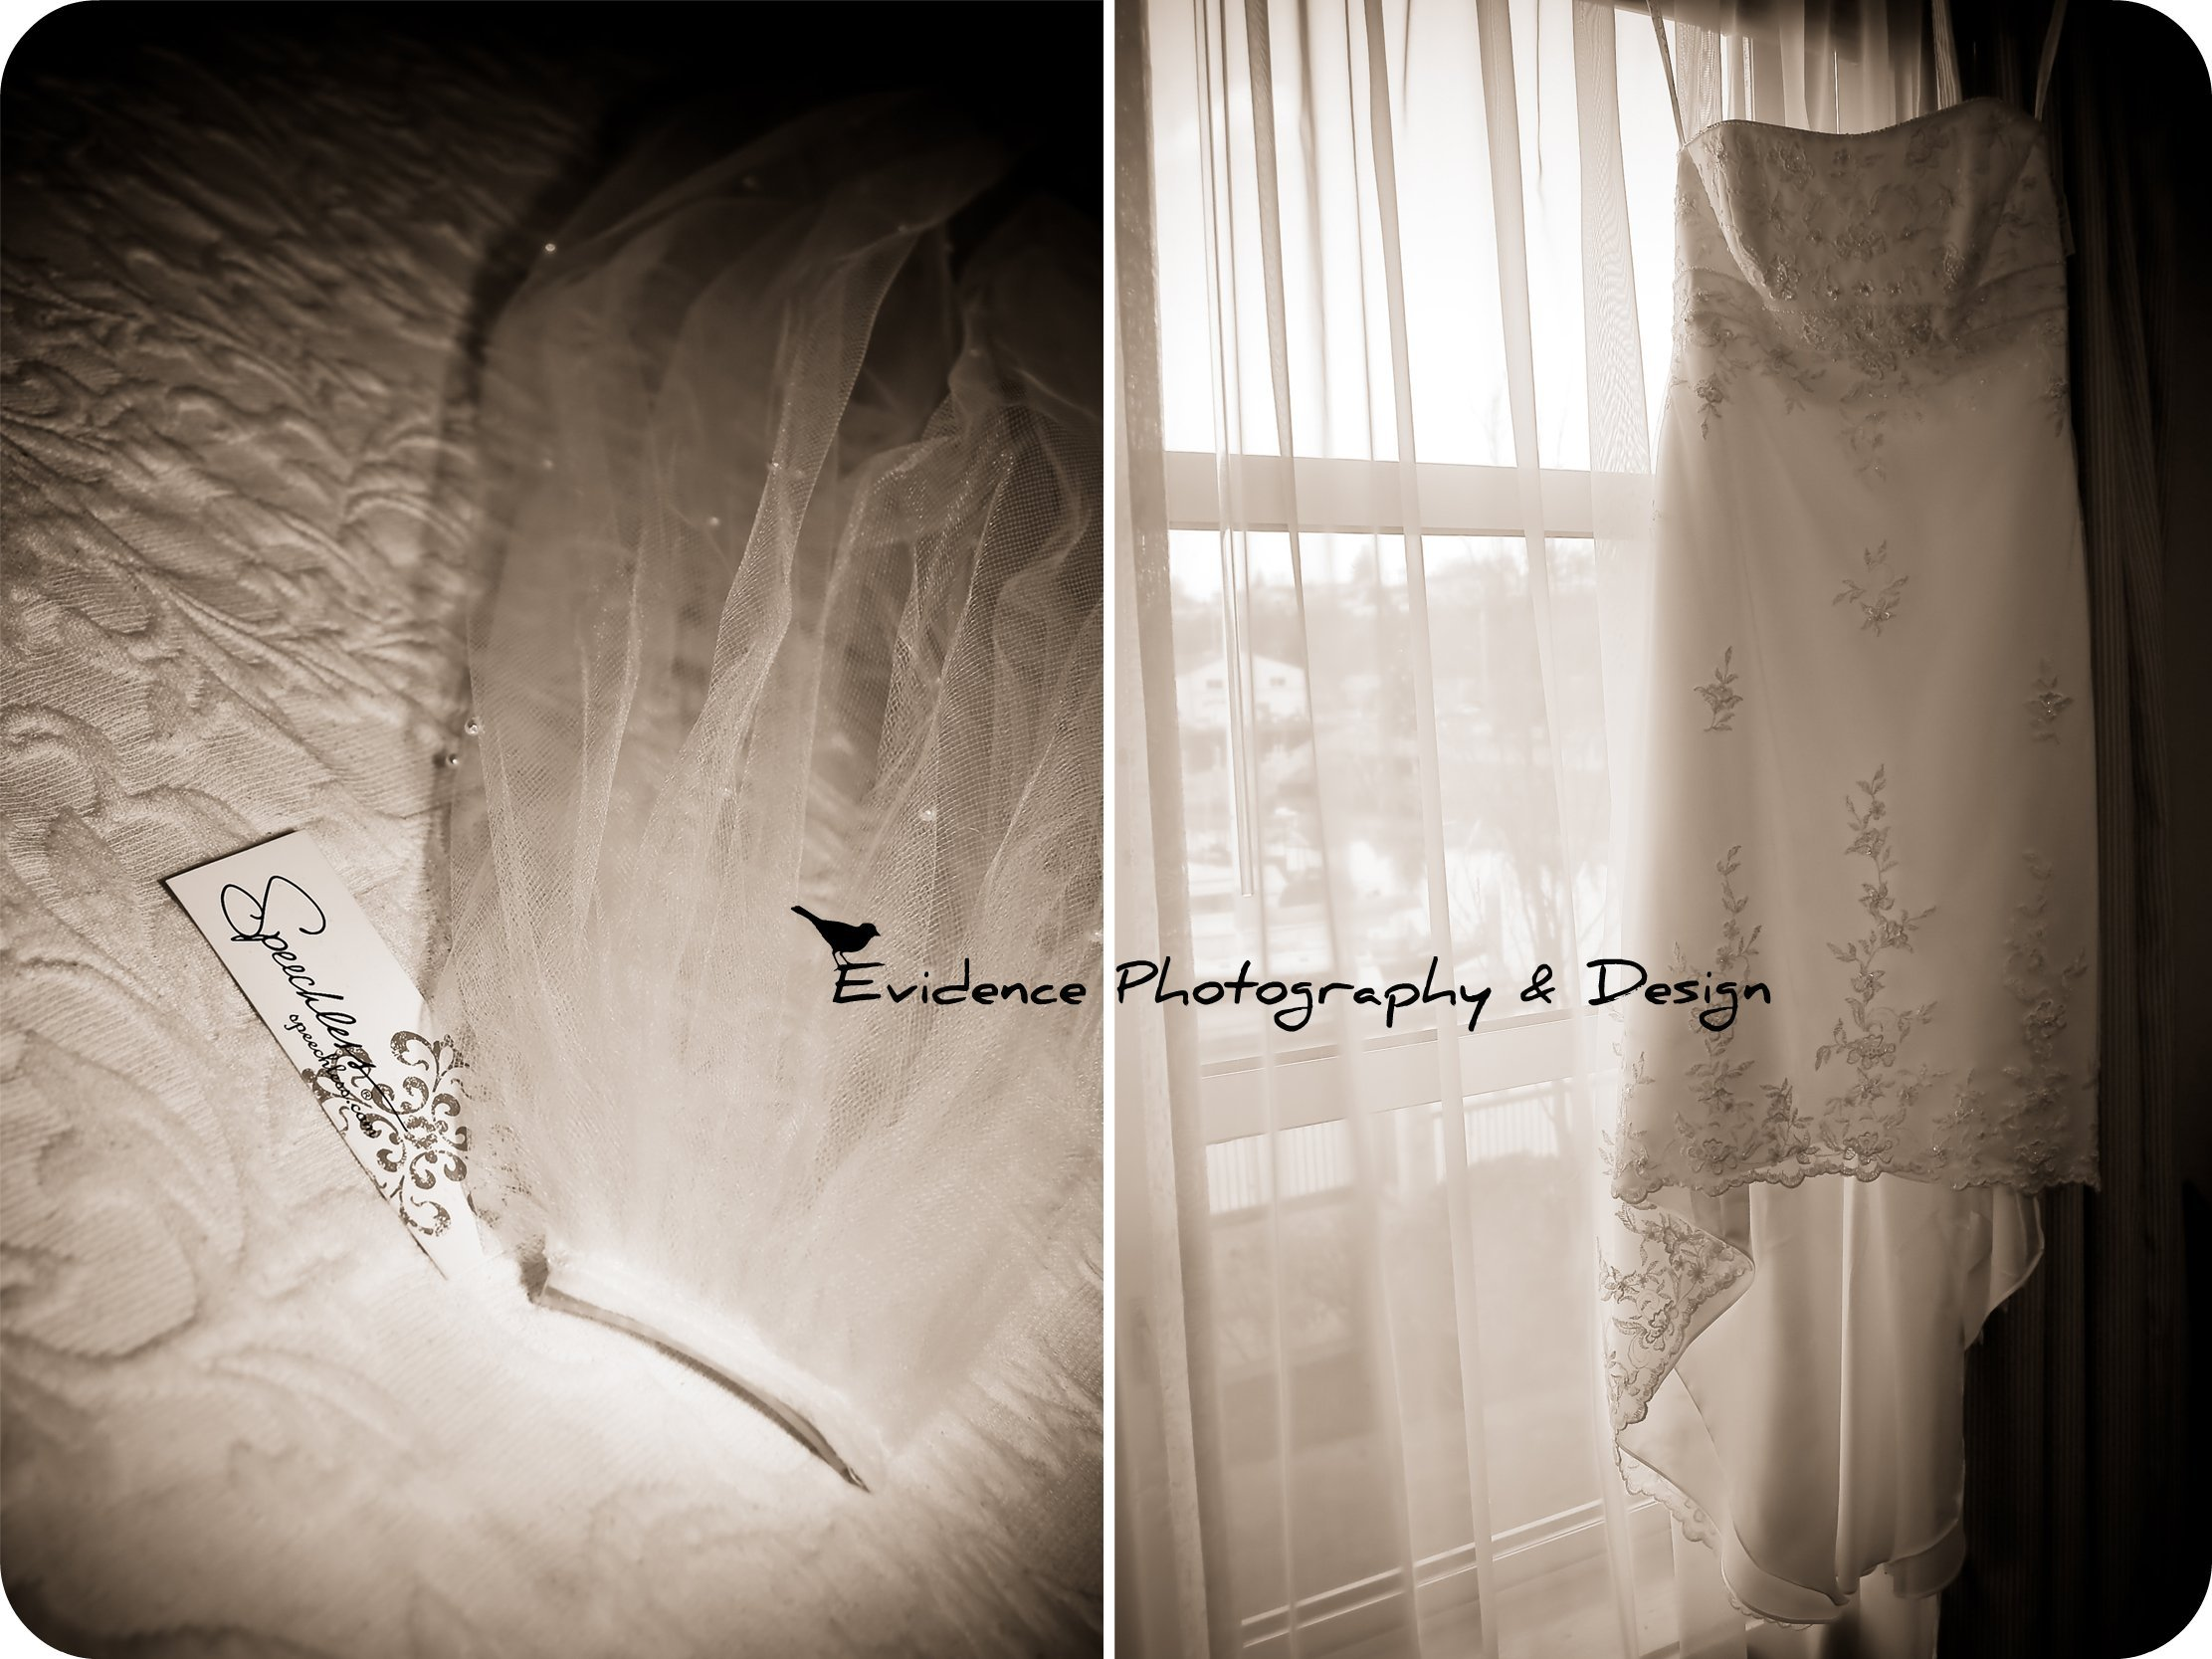 Wedding Dresses, Veils, Photography, Fashion, white, dress, Veil, Wedding, Headpiece, Evidence photography and design, Sepia